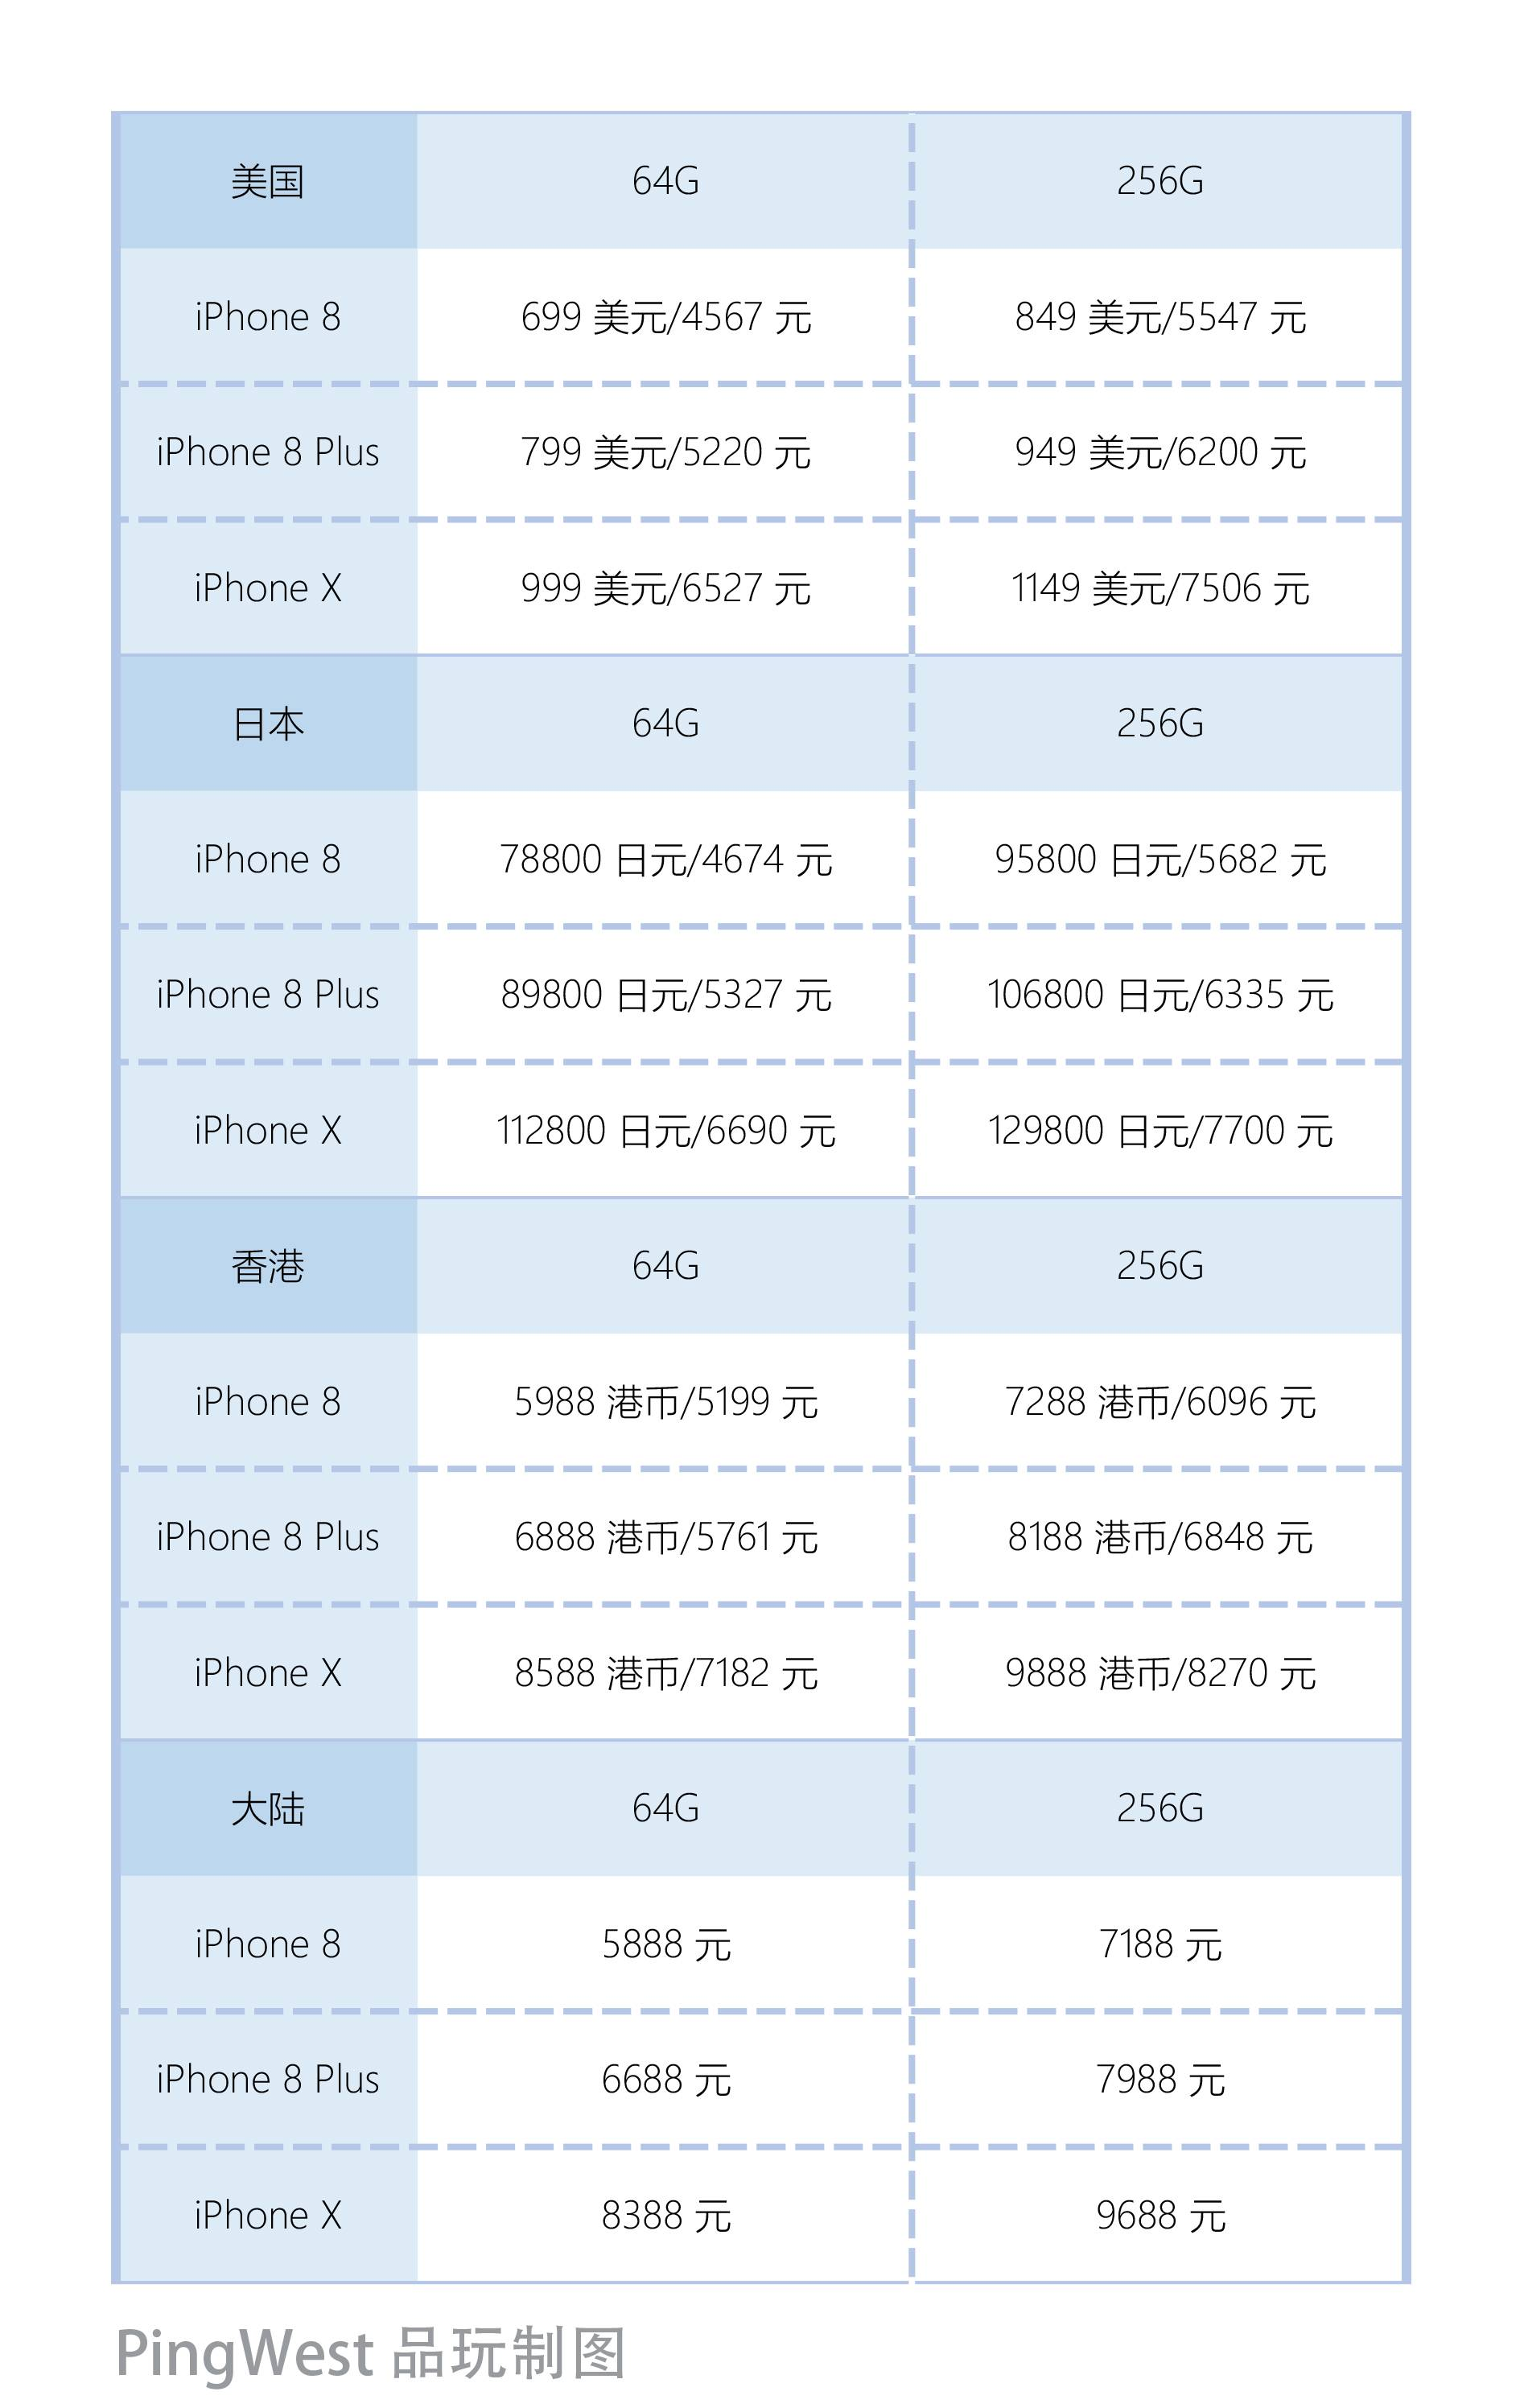 iPhone X prices